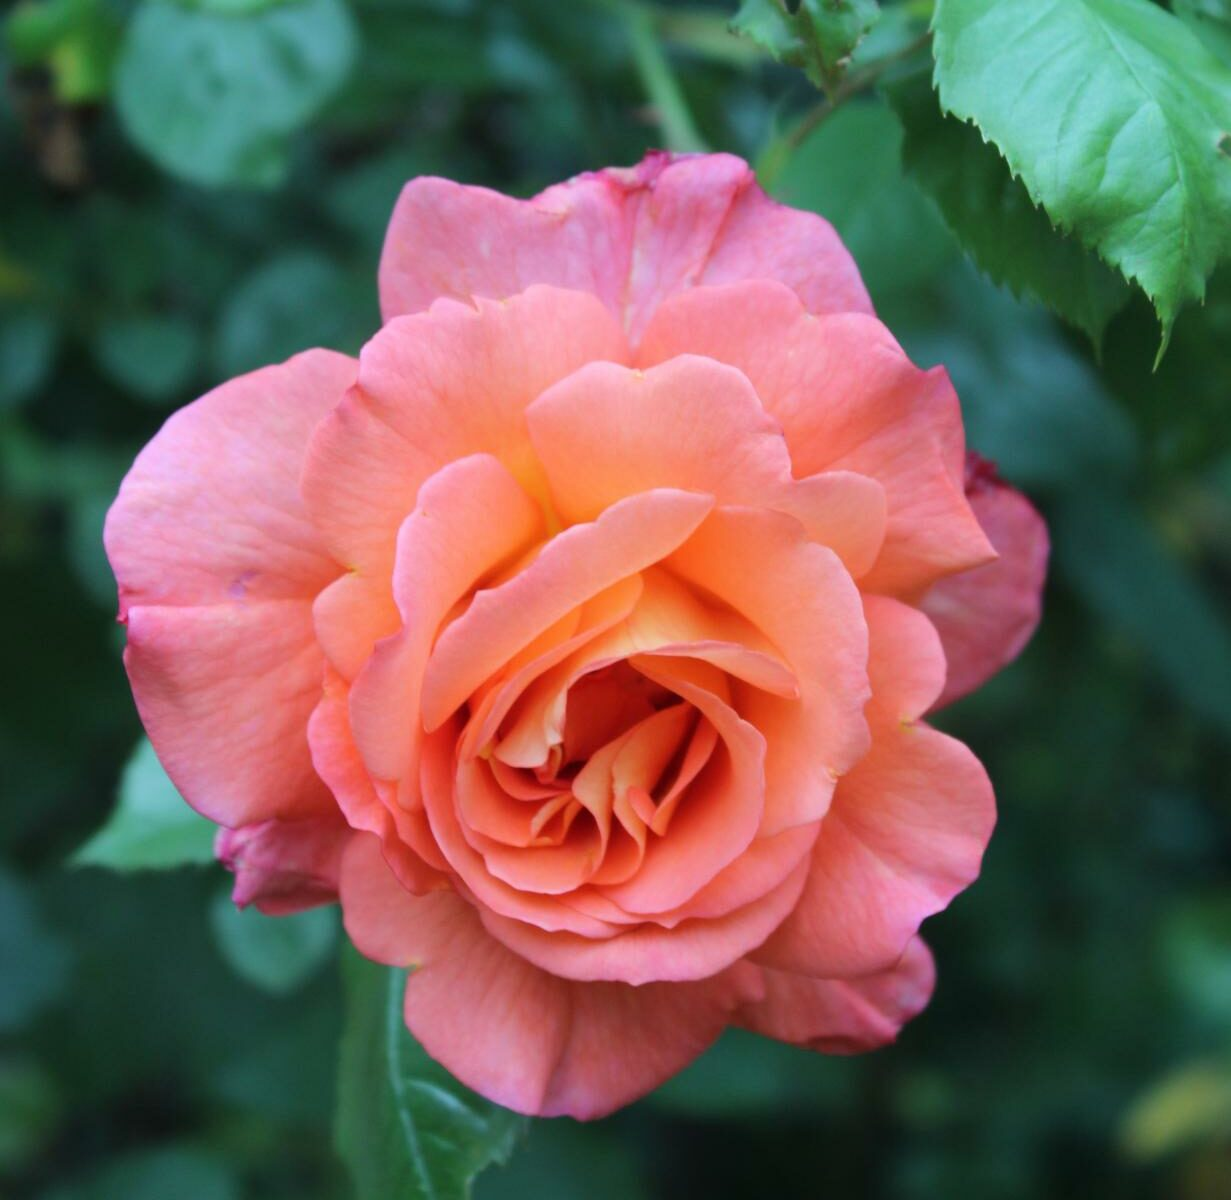 Apricotfarbene Rose